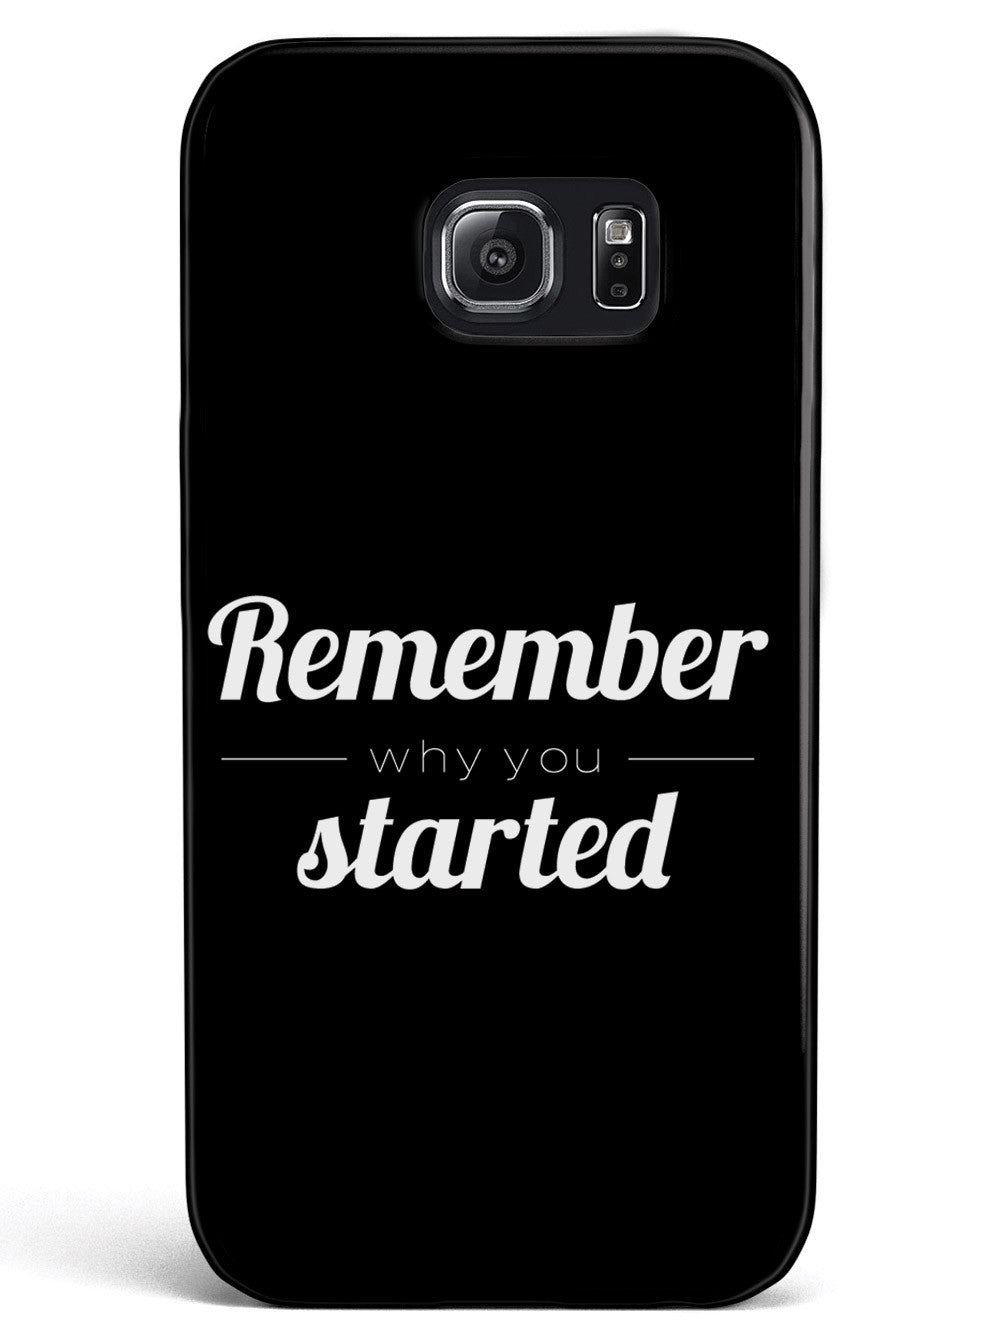 Remember Why You Started - Black Case